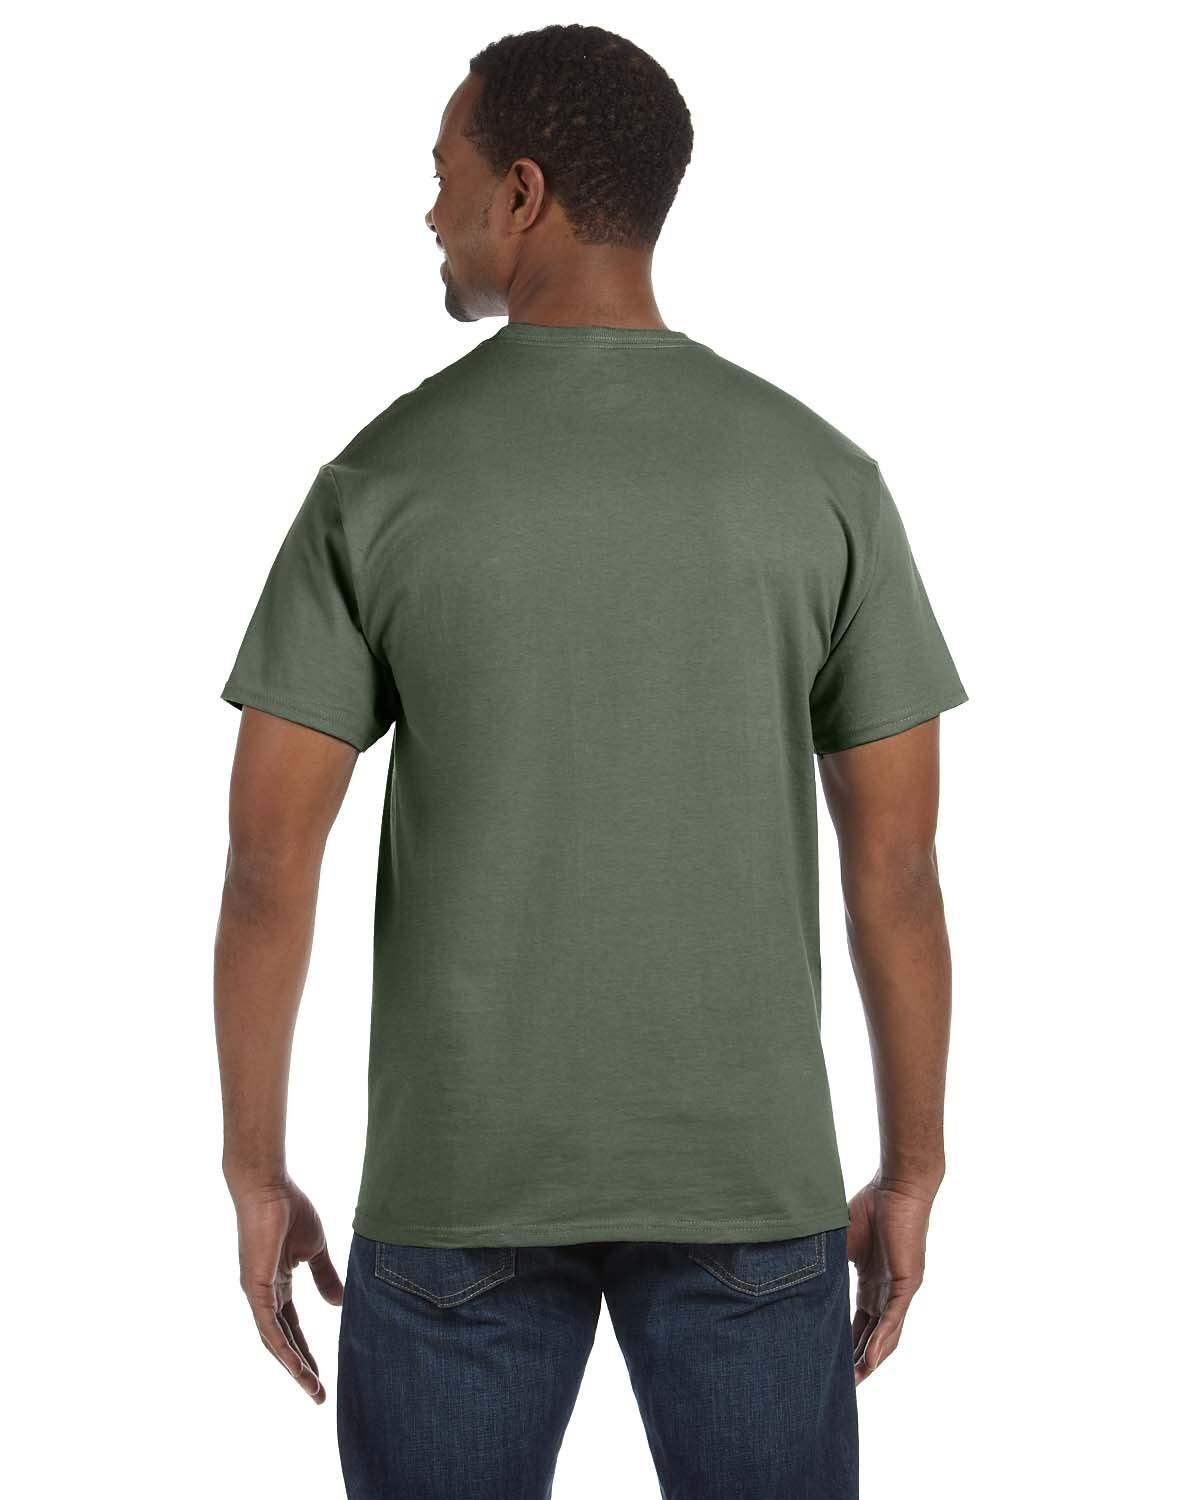 5250T Hanes FATIGUE GREEN